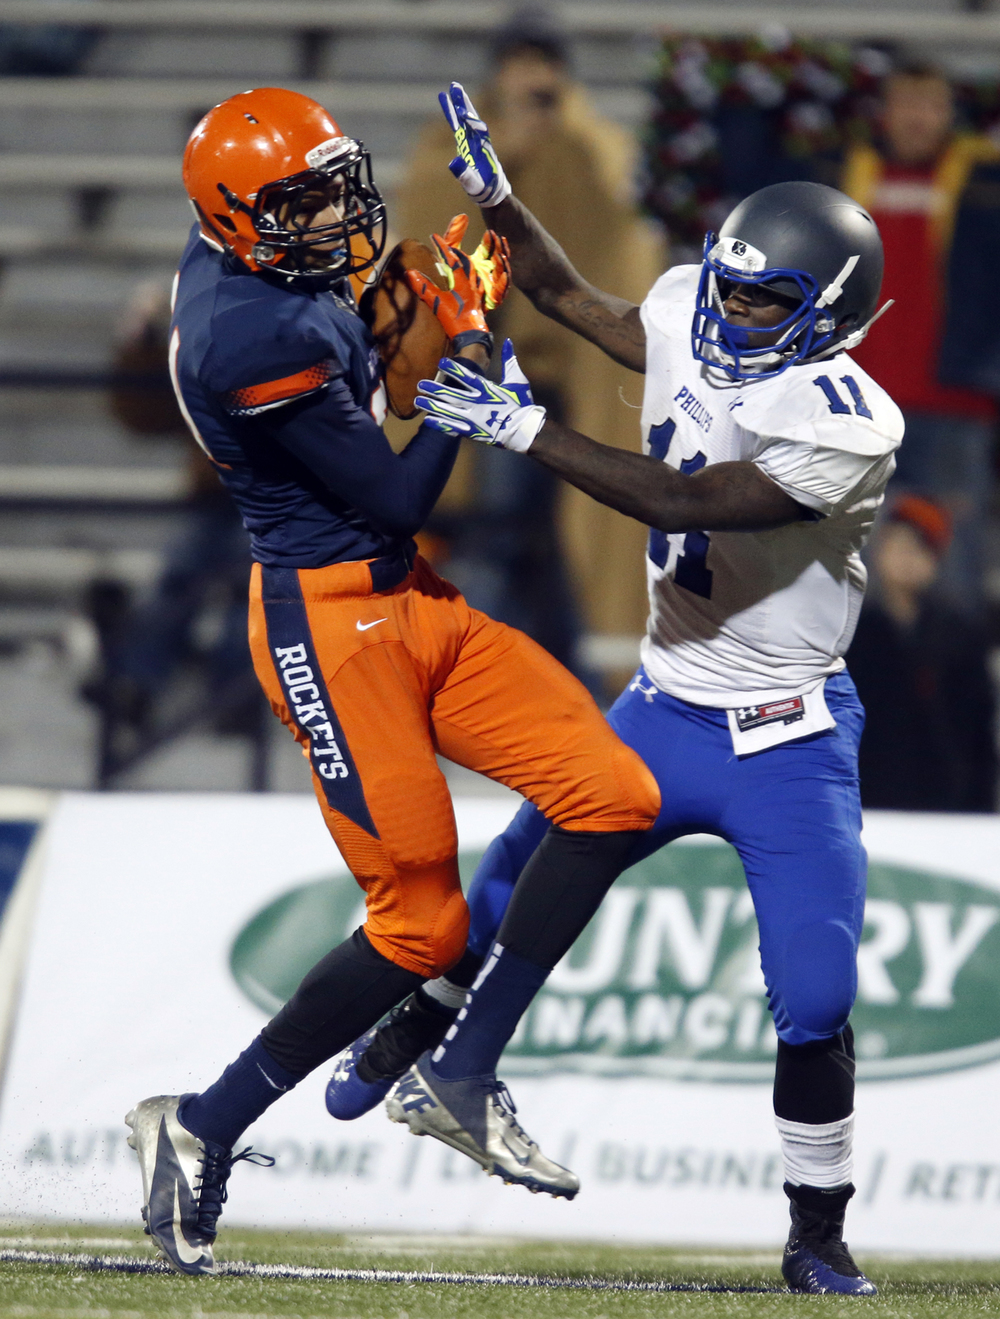 Rochester's Collin Stallworth bounches off Chicago Phillips' Corey Warren on his way to the endzone during the Class 4A football championship game at Memorial Stadium Friday, Nov. 28, 2014. Ted Schurter/The State Journal-Register